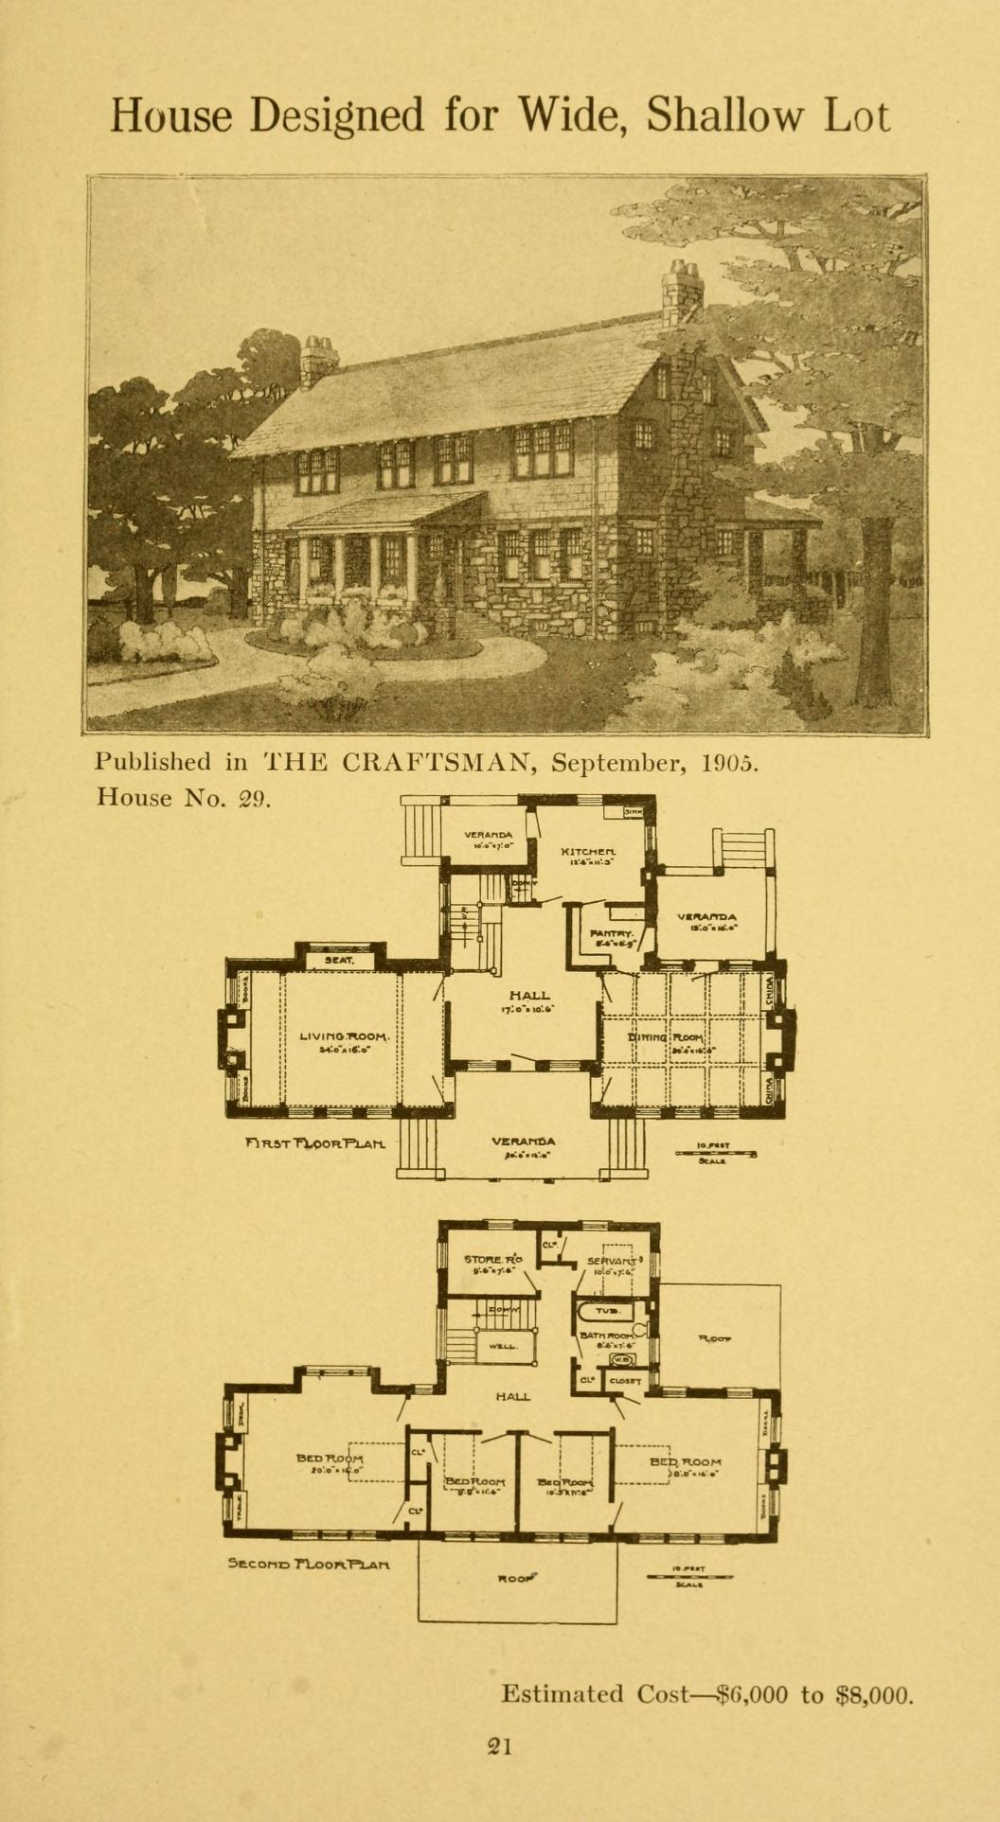 Twenty Four Craftsman Houses With Floor Plans Stickley Gustav 1858 1942 Free Download Borrow And Str Sims House Plans Vintage House Plans Floor Plans